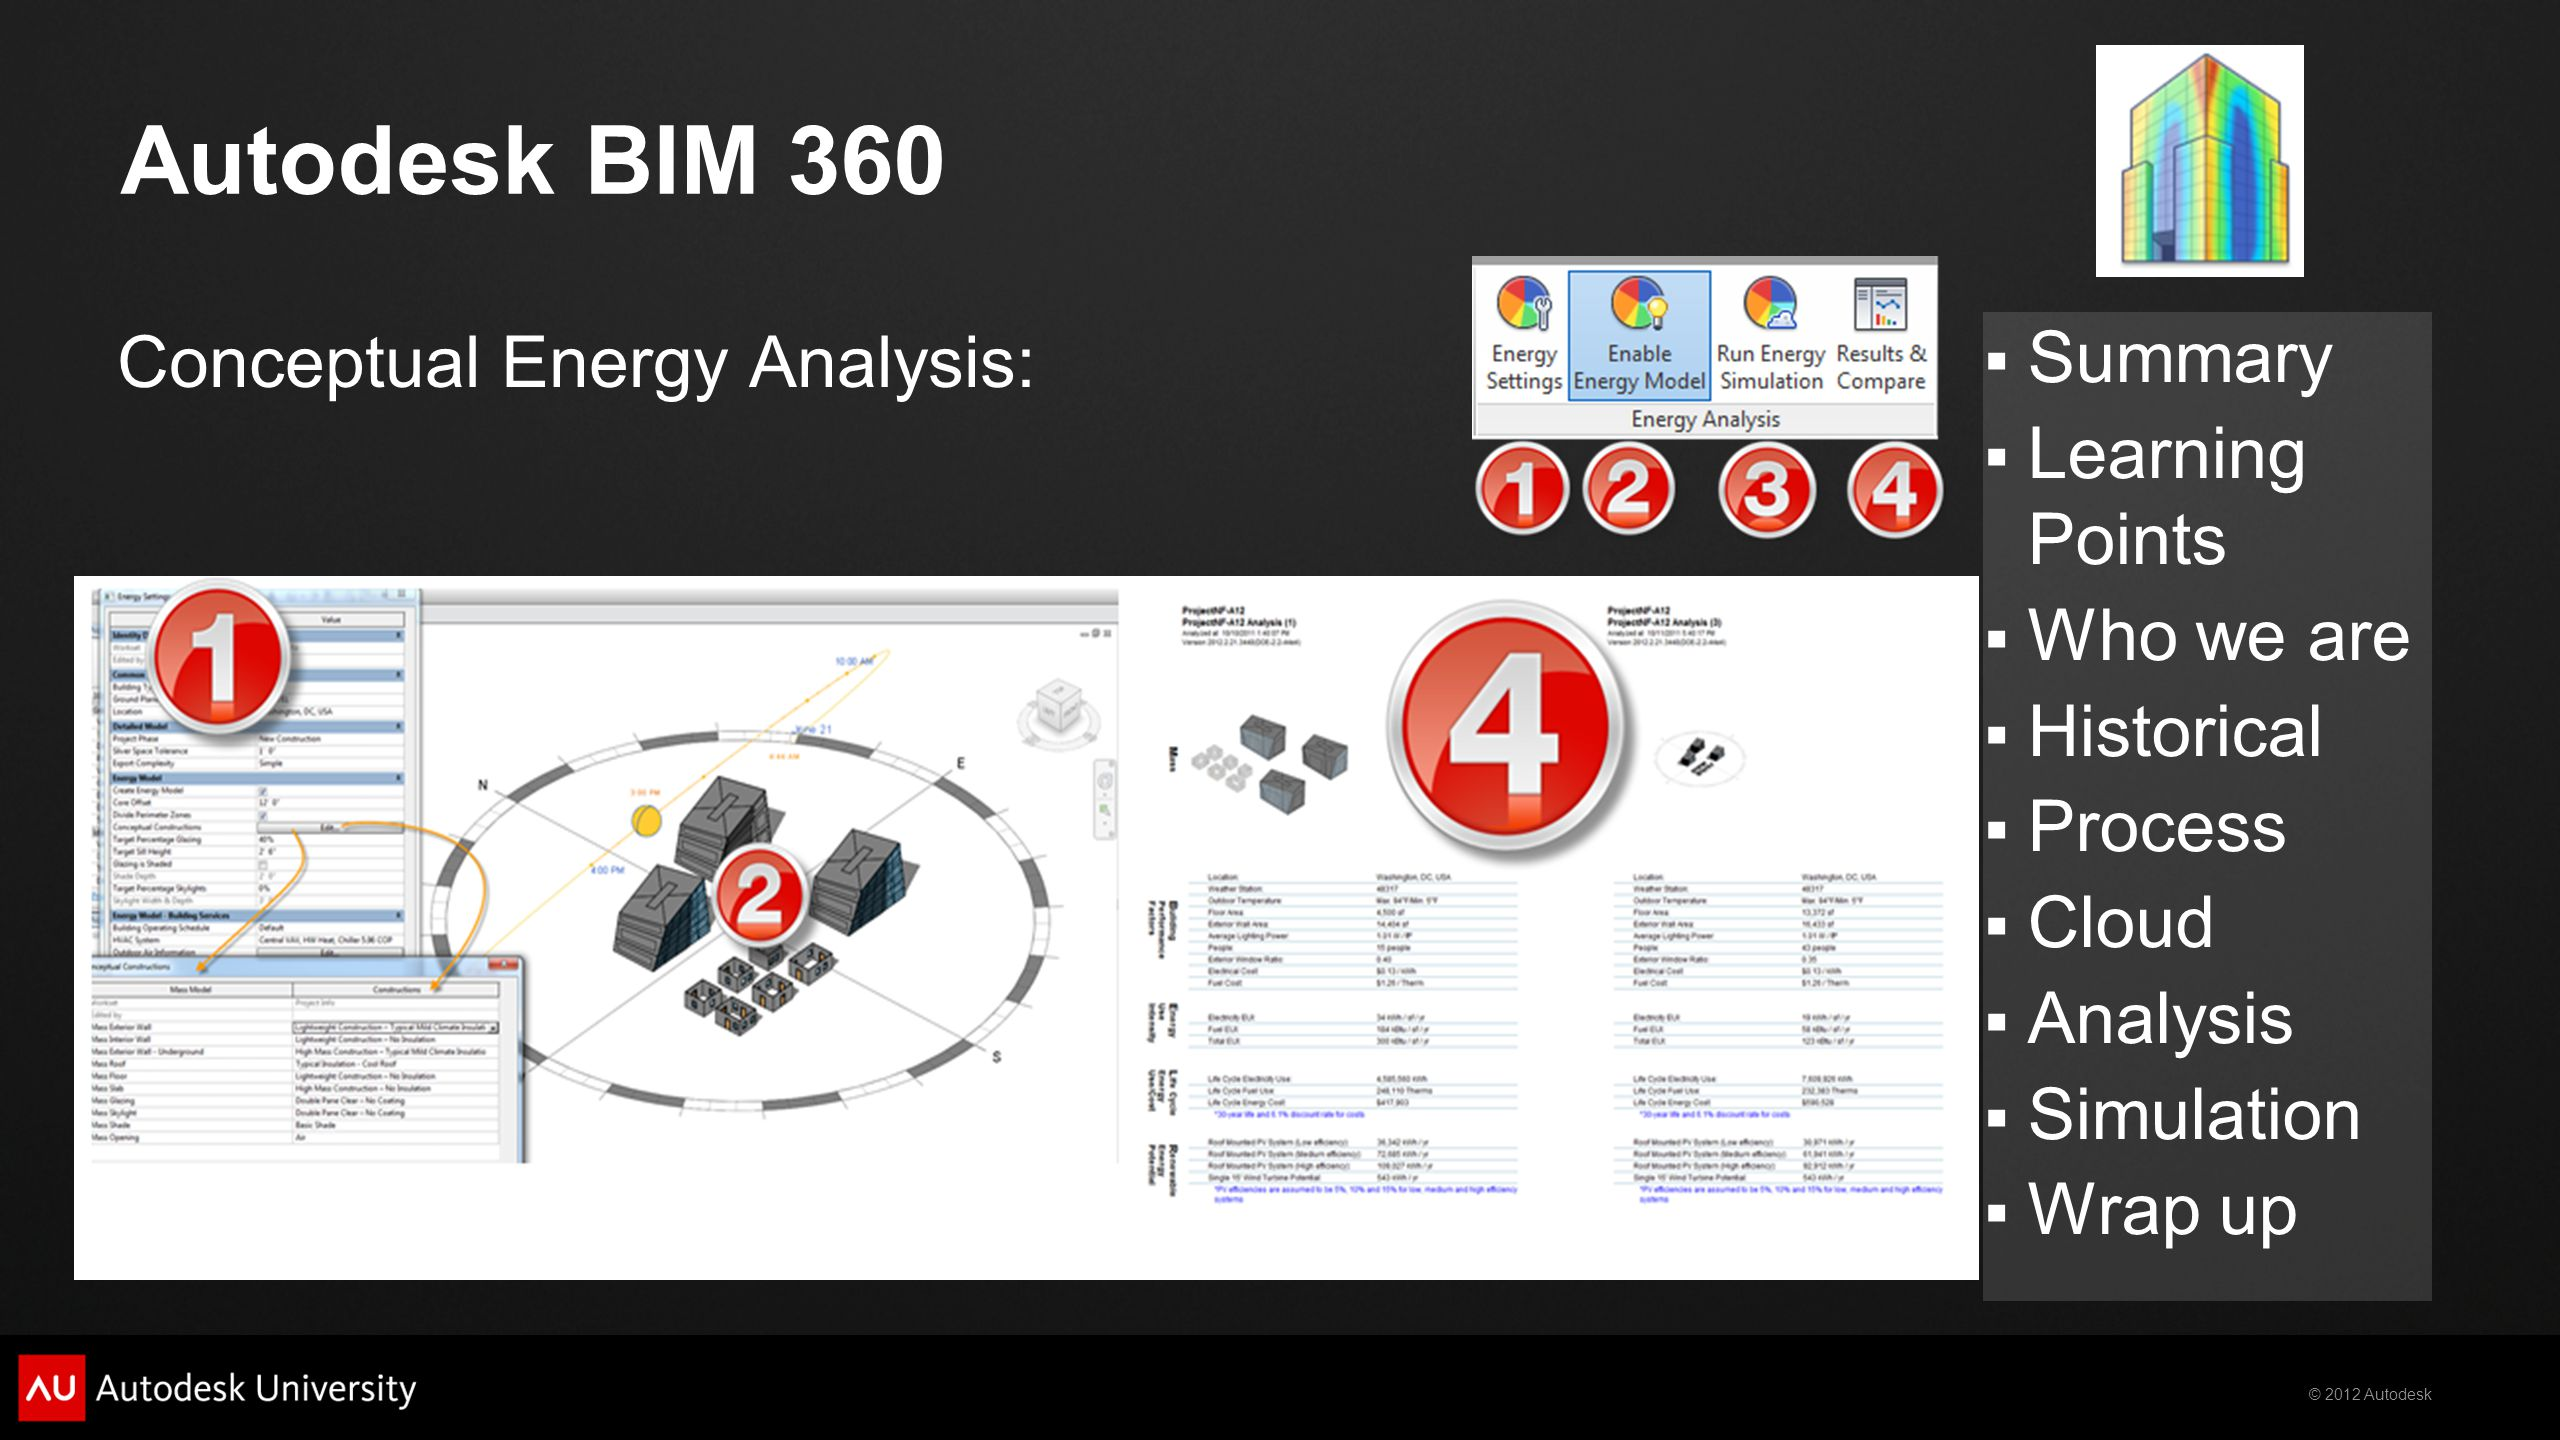 © 2012 Autodesk  Summary  Learning Points  Who we are  Historical  Process  Cloud  Analysis  Simulation  Wrap up Autodesk BIM 360 Conceptual